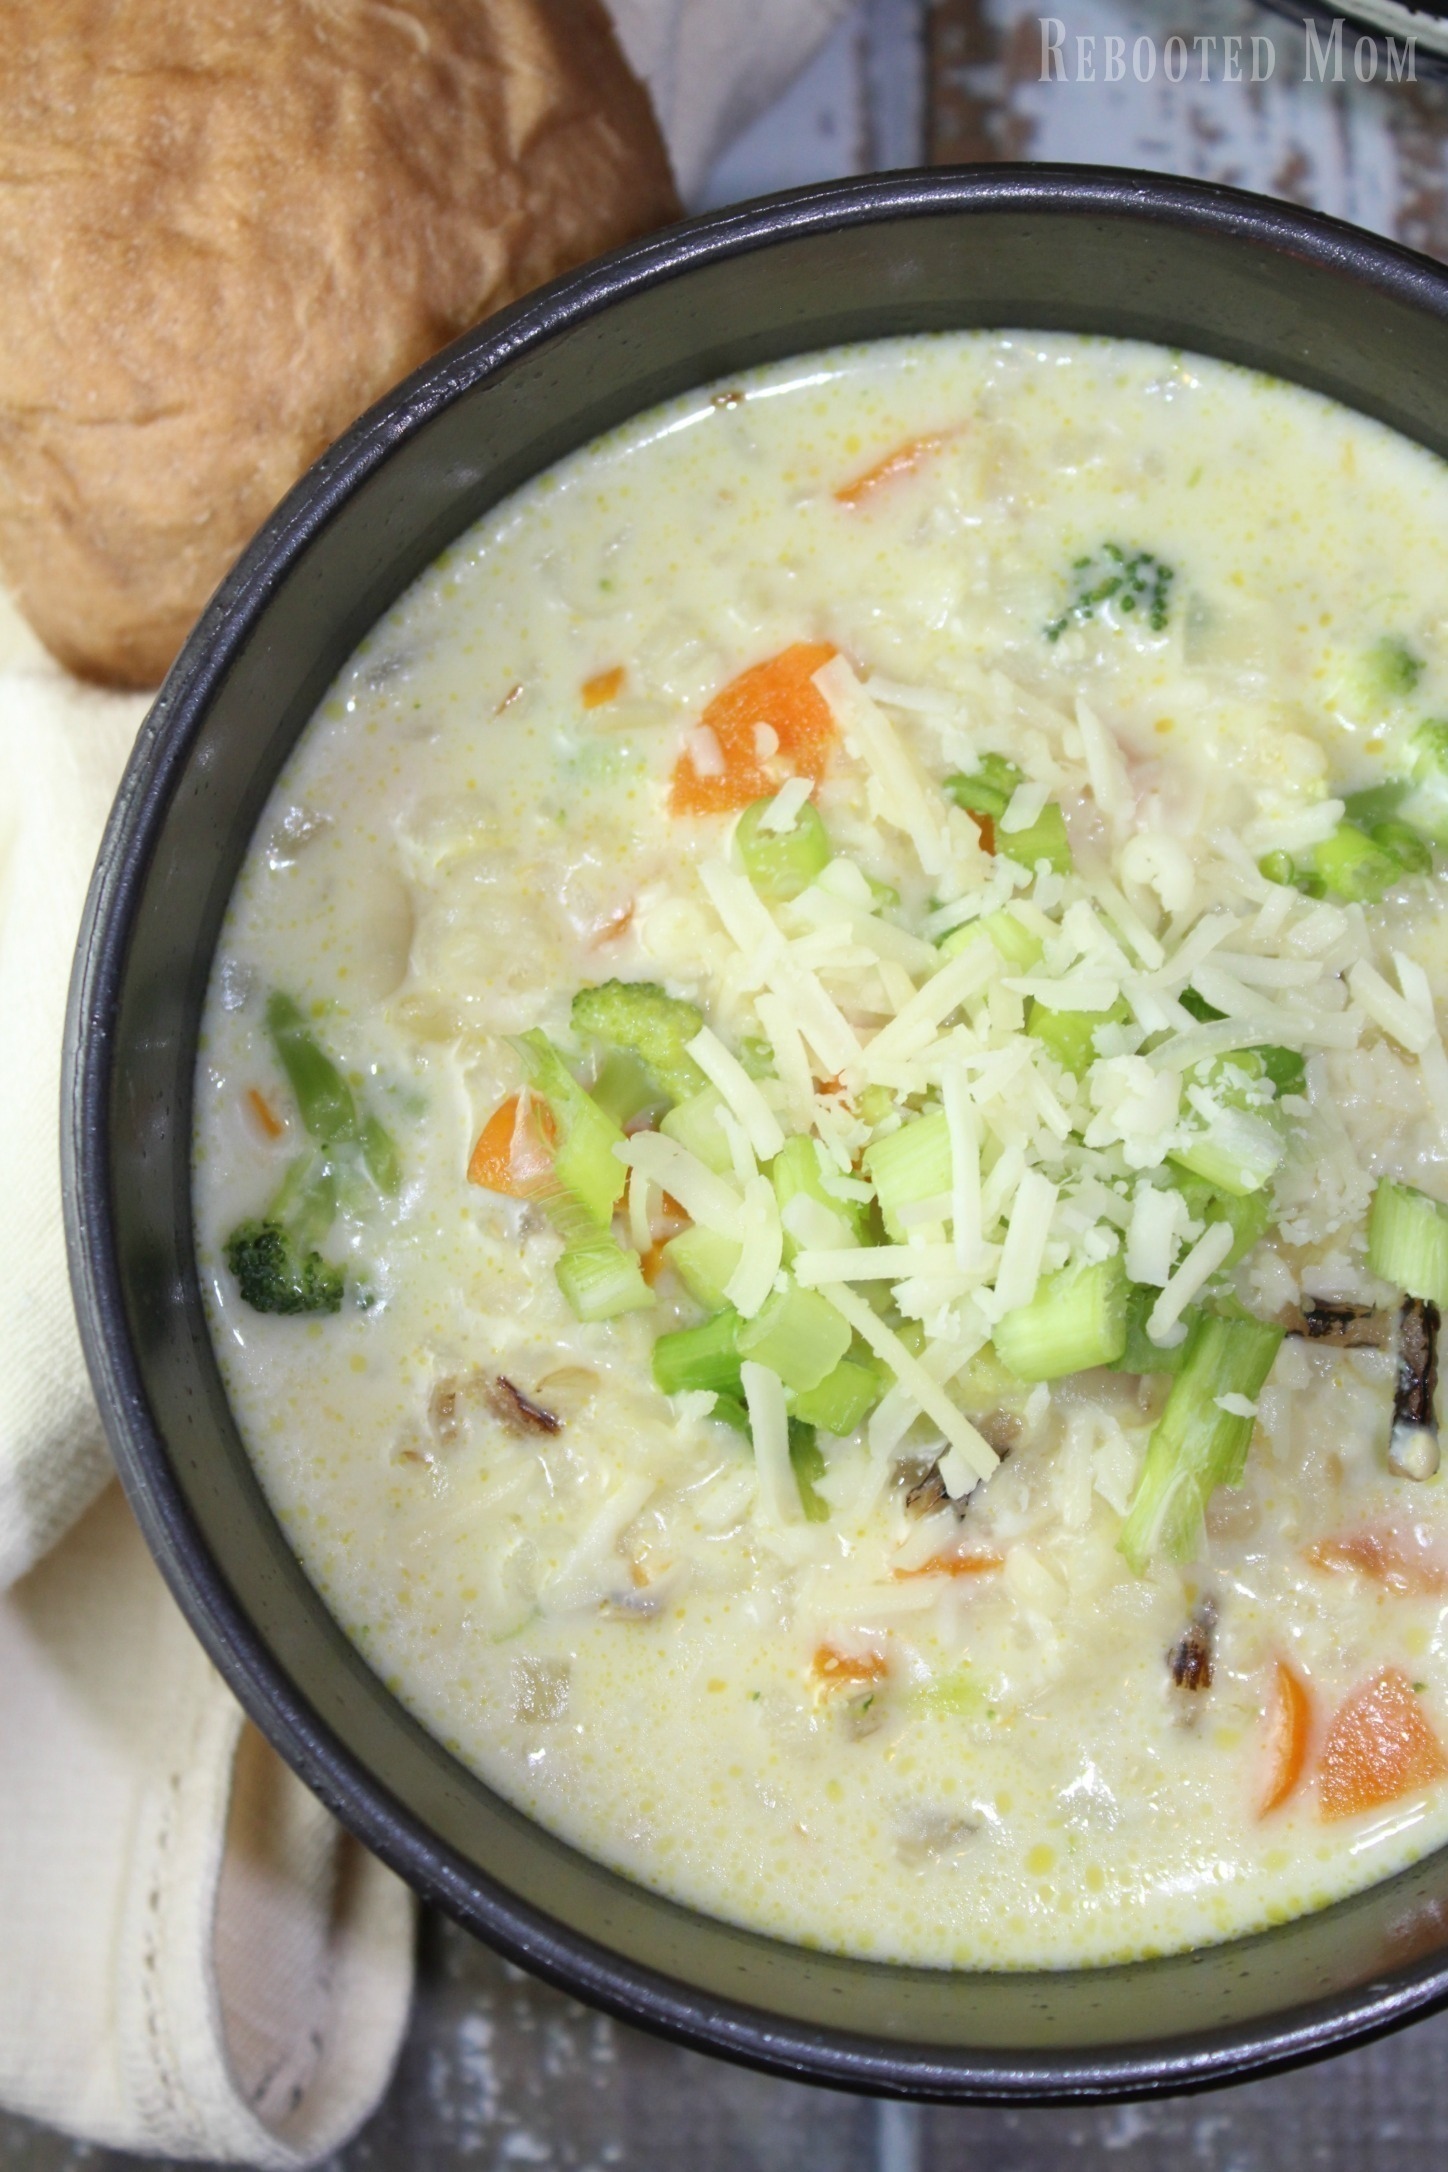 Combine carrots, onions, broccoli, and wild rice in a creamy soup that is effortless to make!